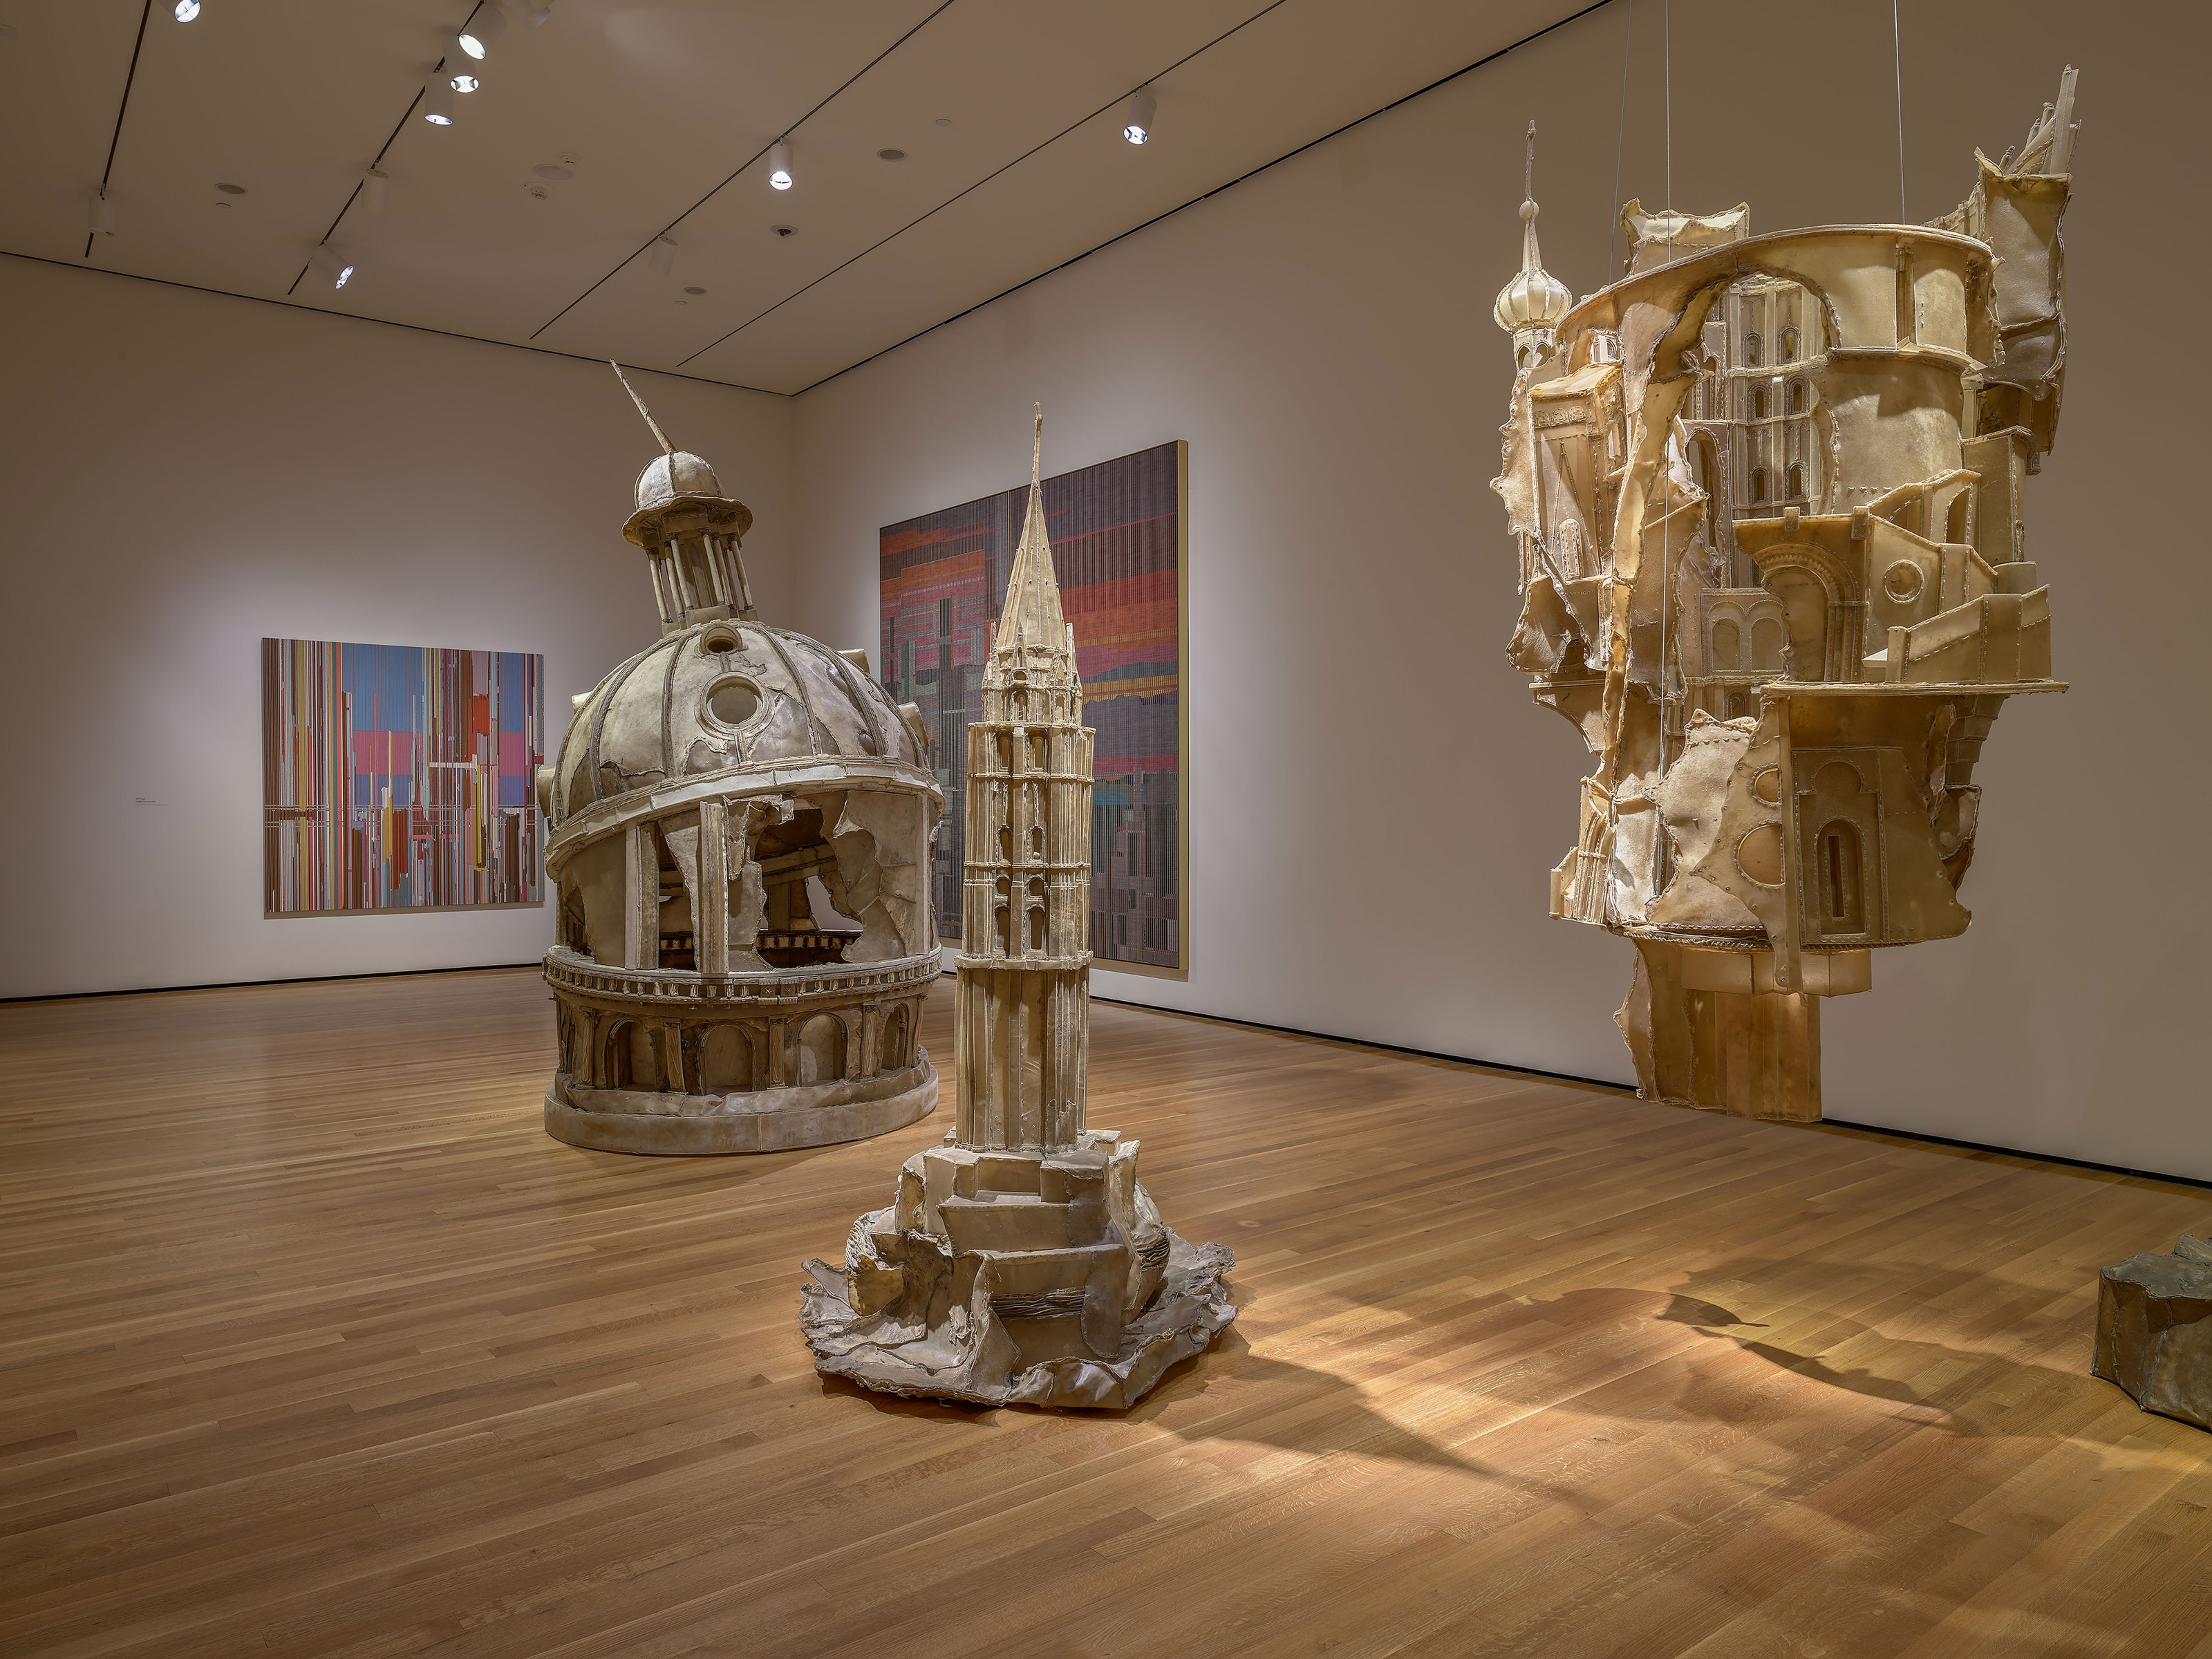 View 4 of Liu Wei's solo museum exhibition titled Invisible Cities at the Cleveland Museum of Art